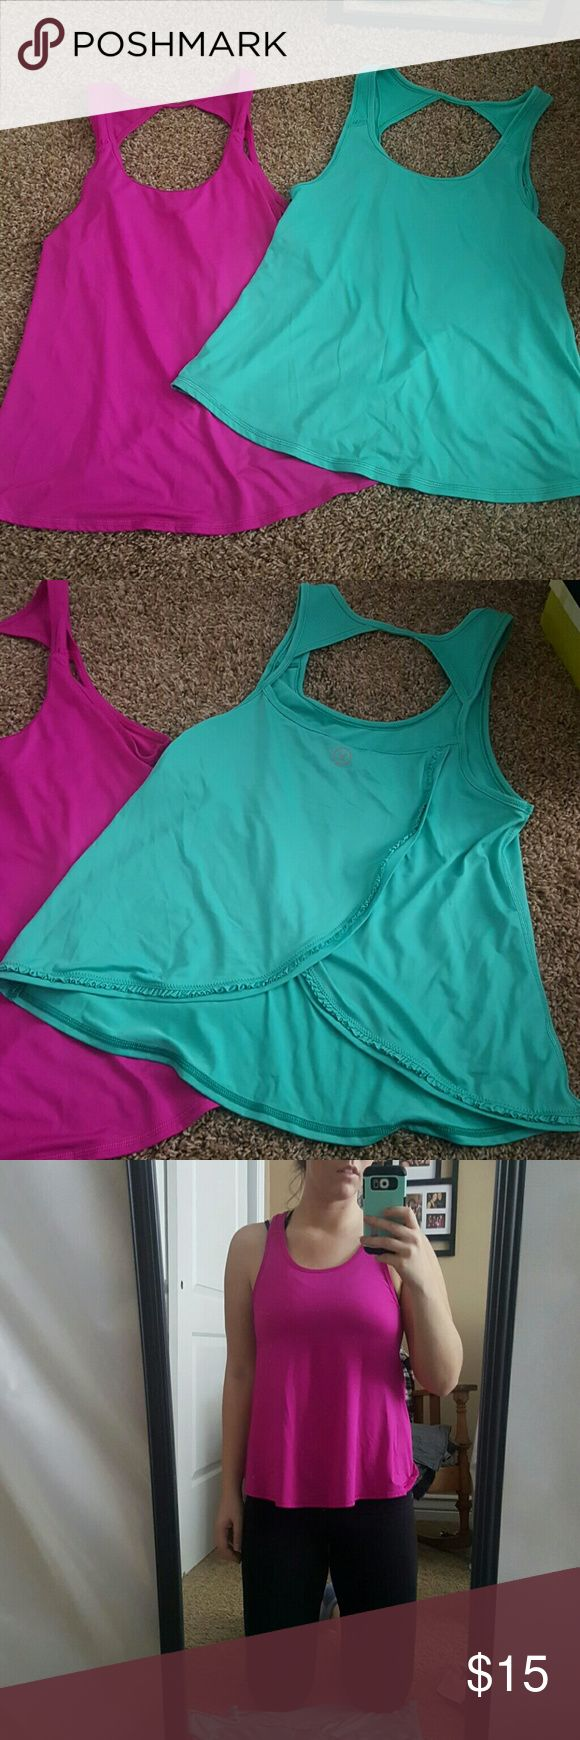 **Discounted Ship** 2 American Eagle work out tops Fushia pink and teal tanks. Exact same. The back is cut out, cute lacey detailing on the back. Flowy in the front. American Eagle Outfitters Tops Tank Tops